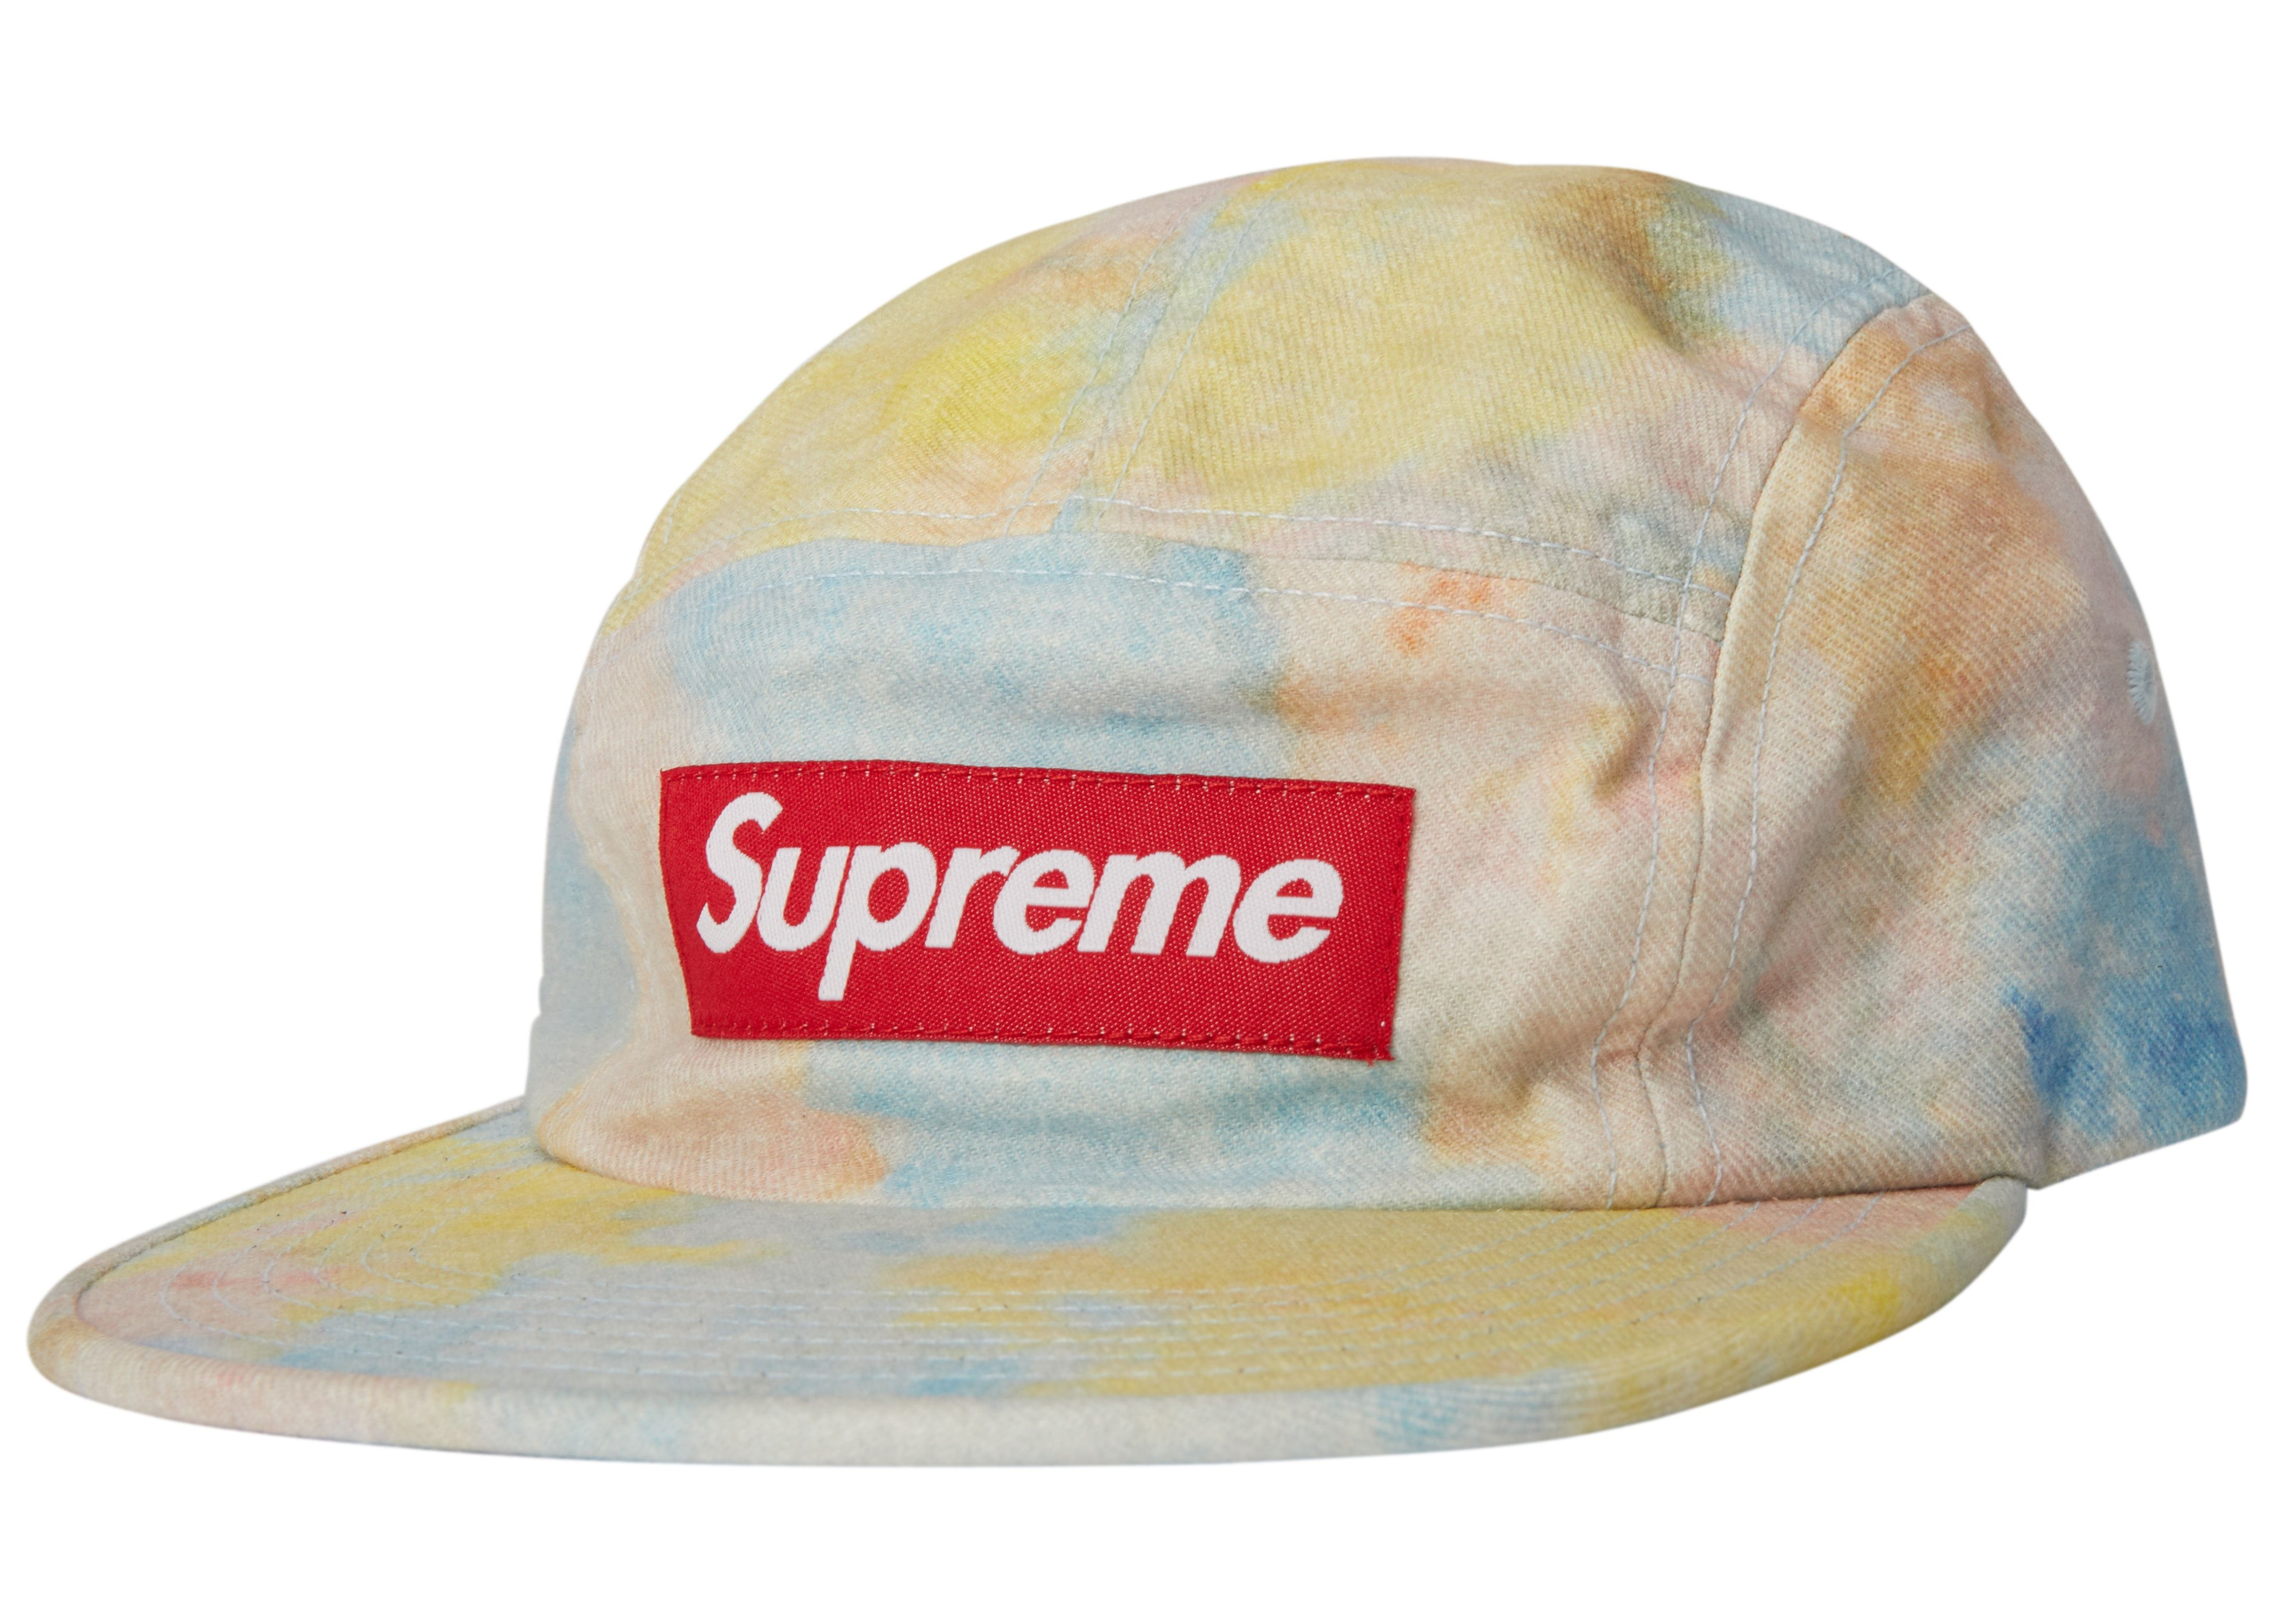 59676d24 Check out the Supreme Multicolor Denim Camp Cap Multicolor available on  StockX